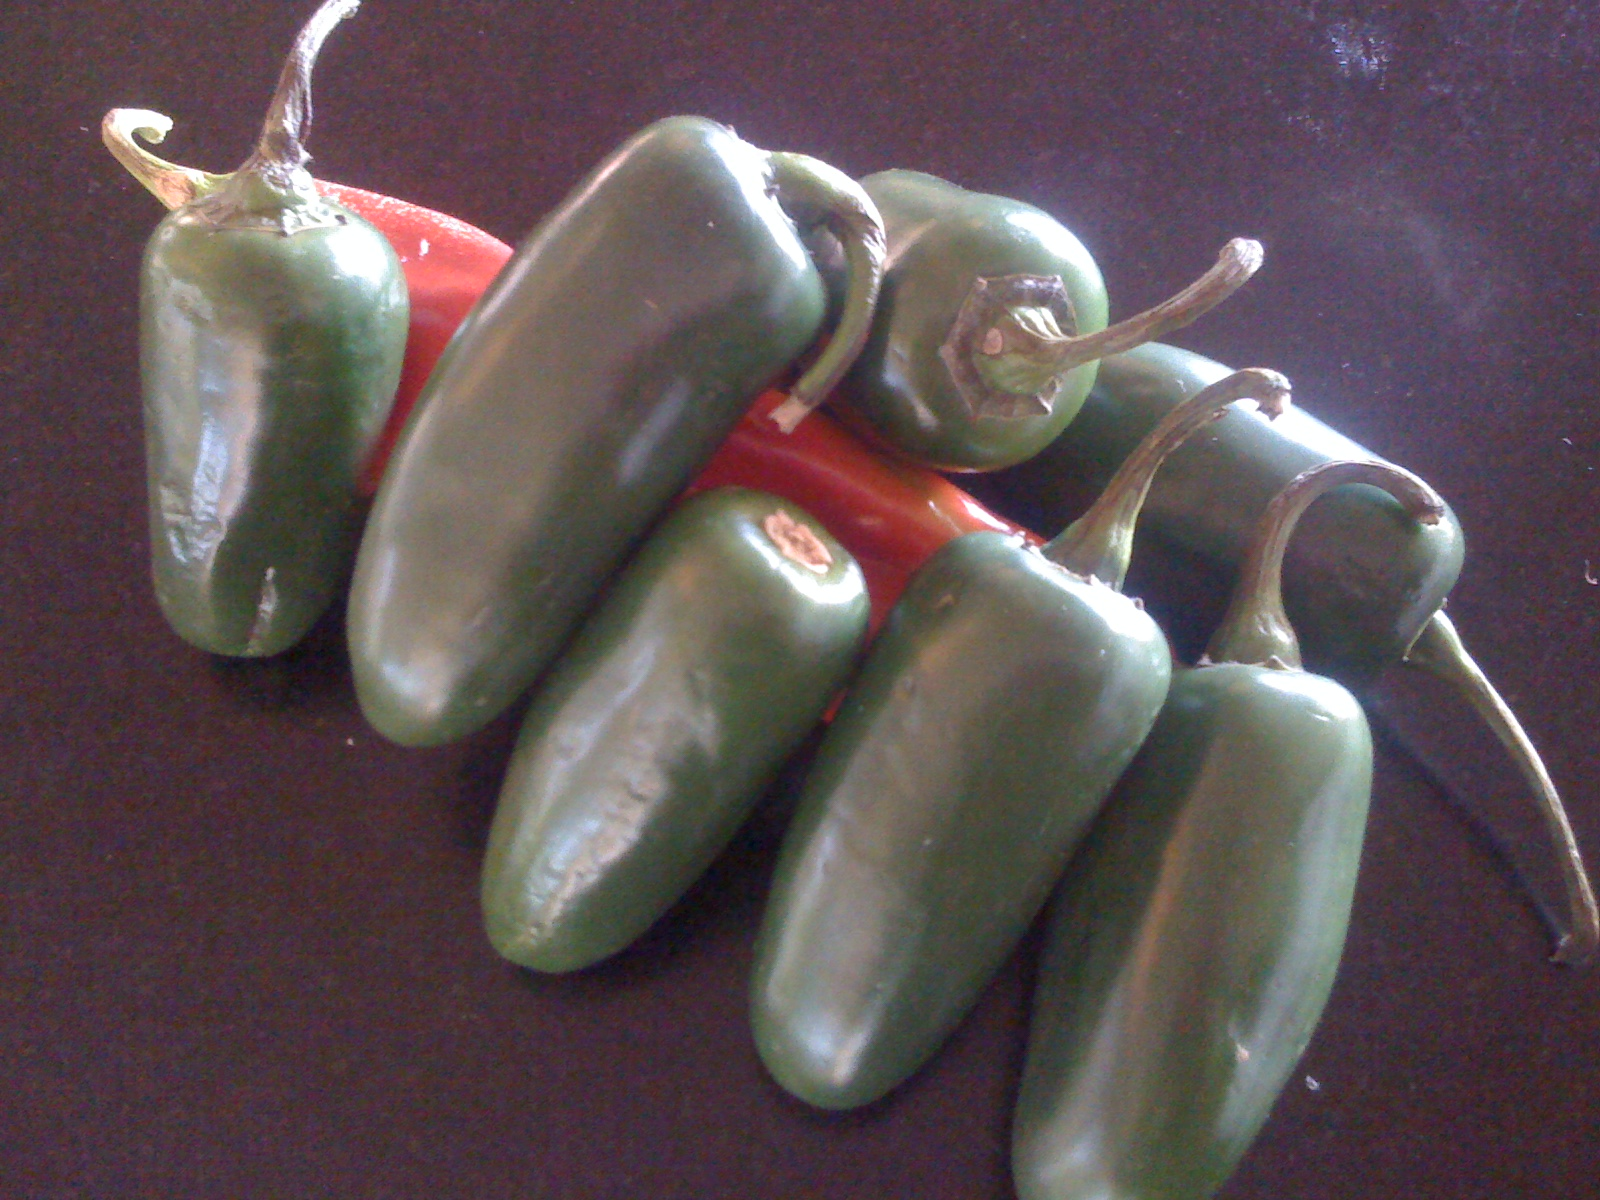 JALEPENO PEPPER BITES